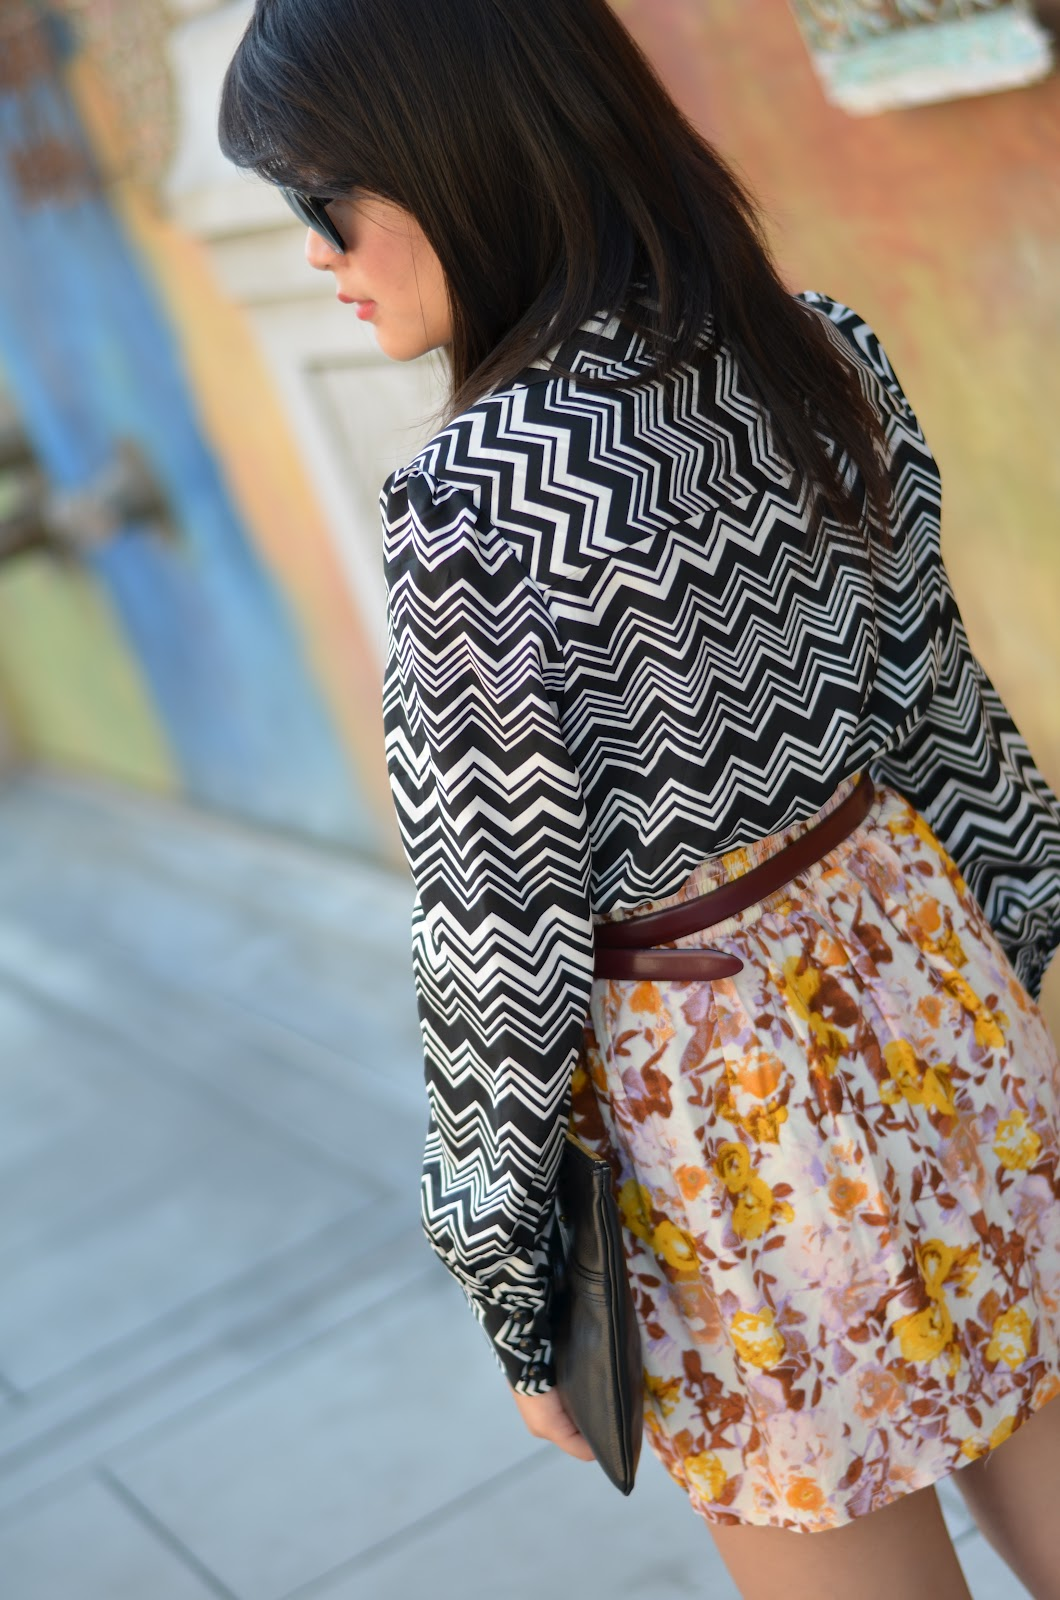 target, missoni target, target missoni, black white chevron blouse, missoni black white chevron blouse, h&m floral skirt, marc jacobs, marc jacobs black clutch